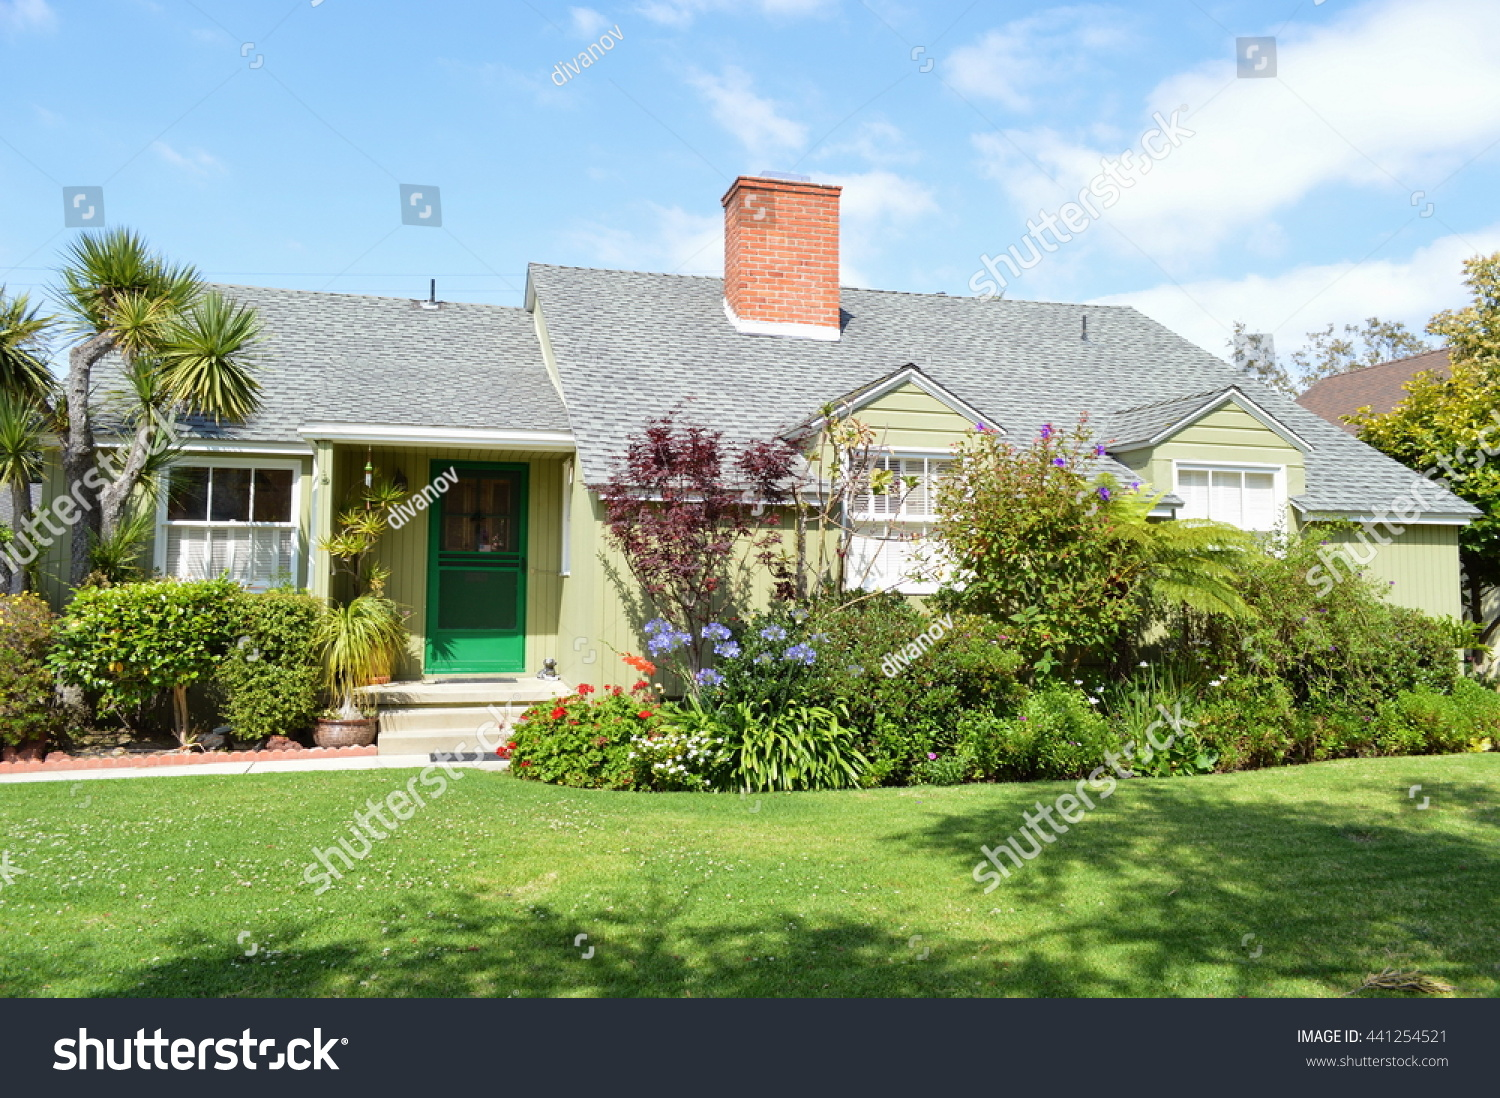 Landscaped Homes beautiful homes estates nicely landscaped front stock photo